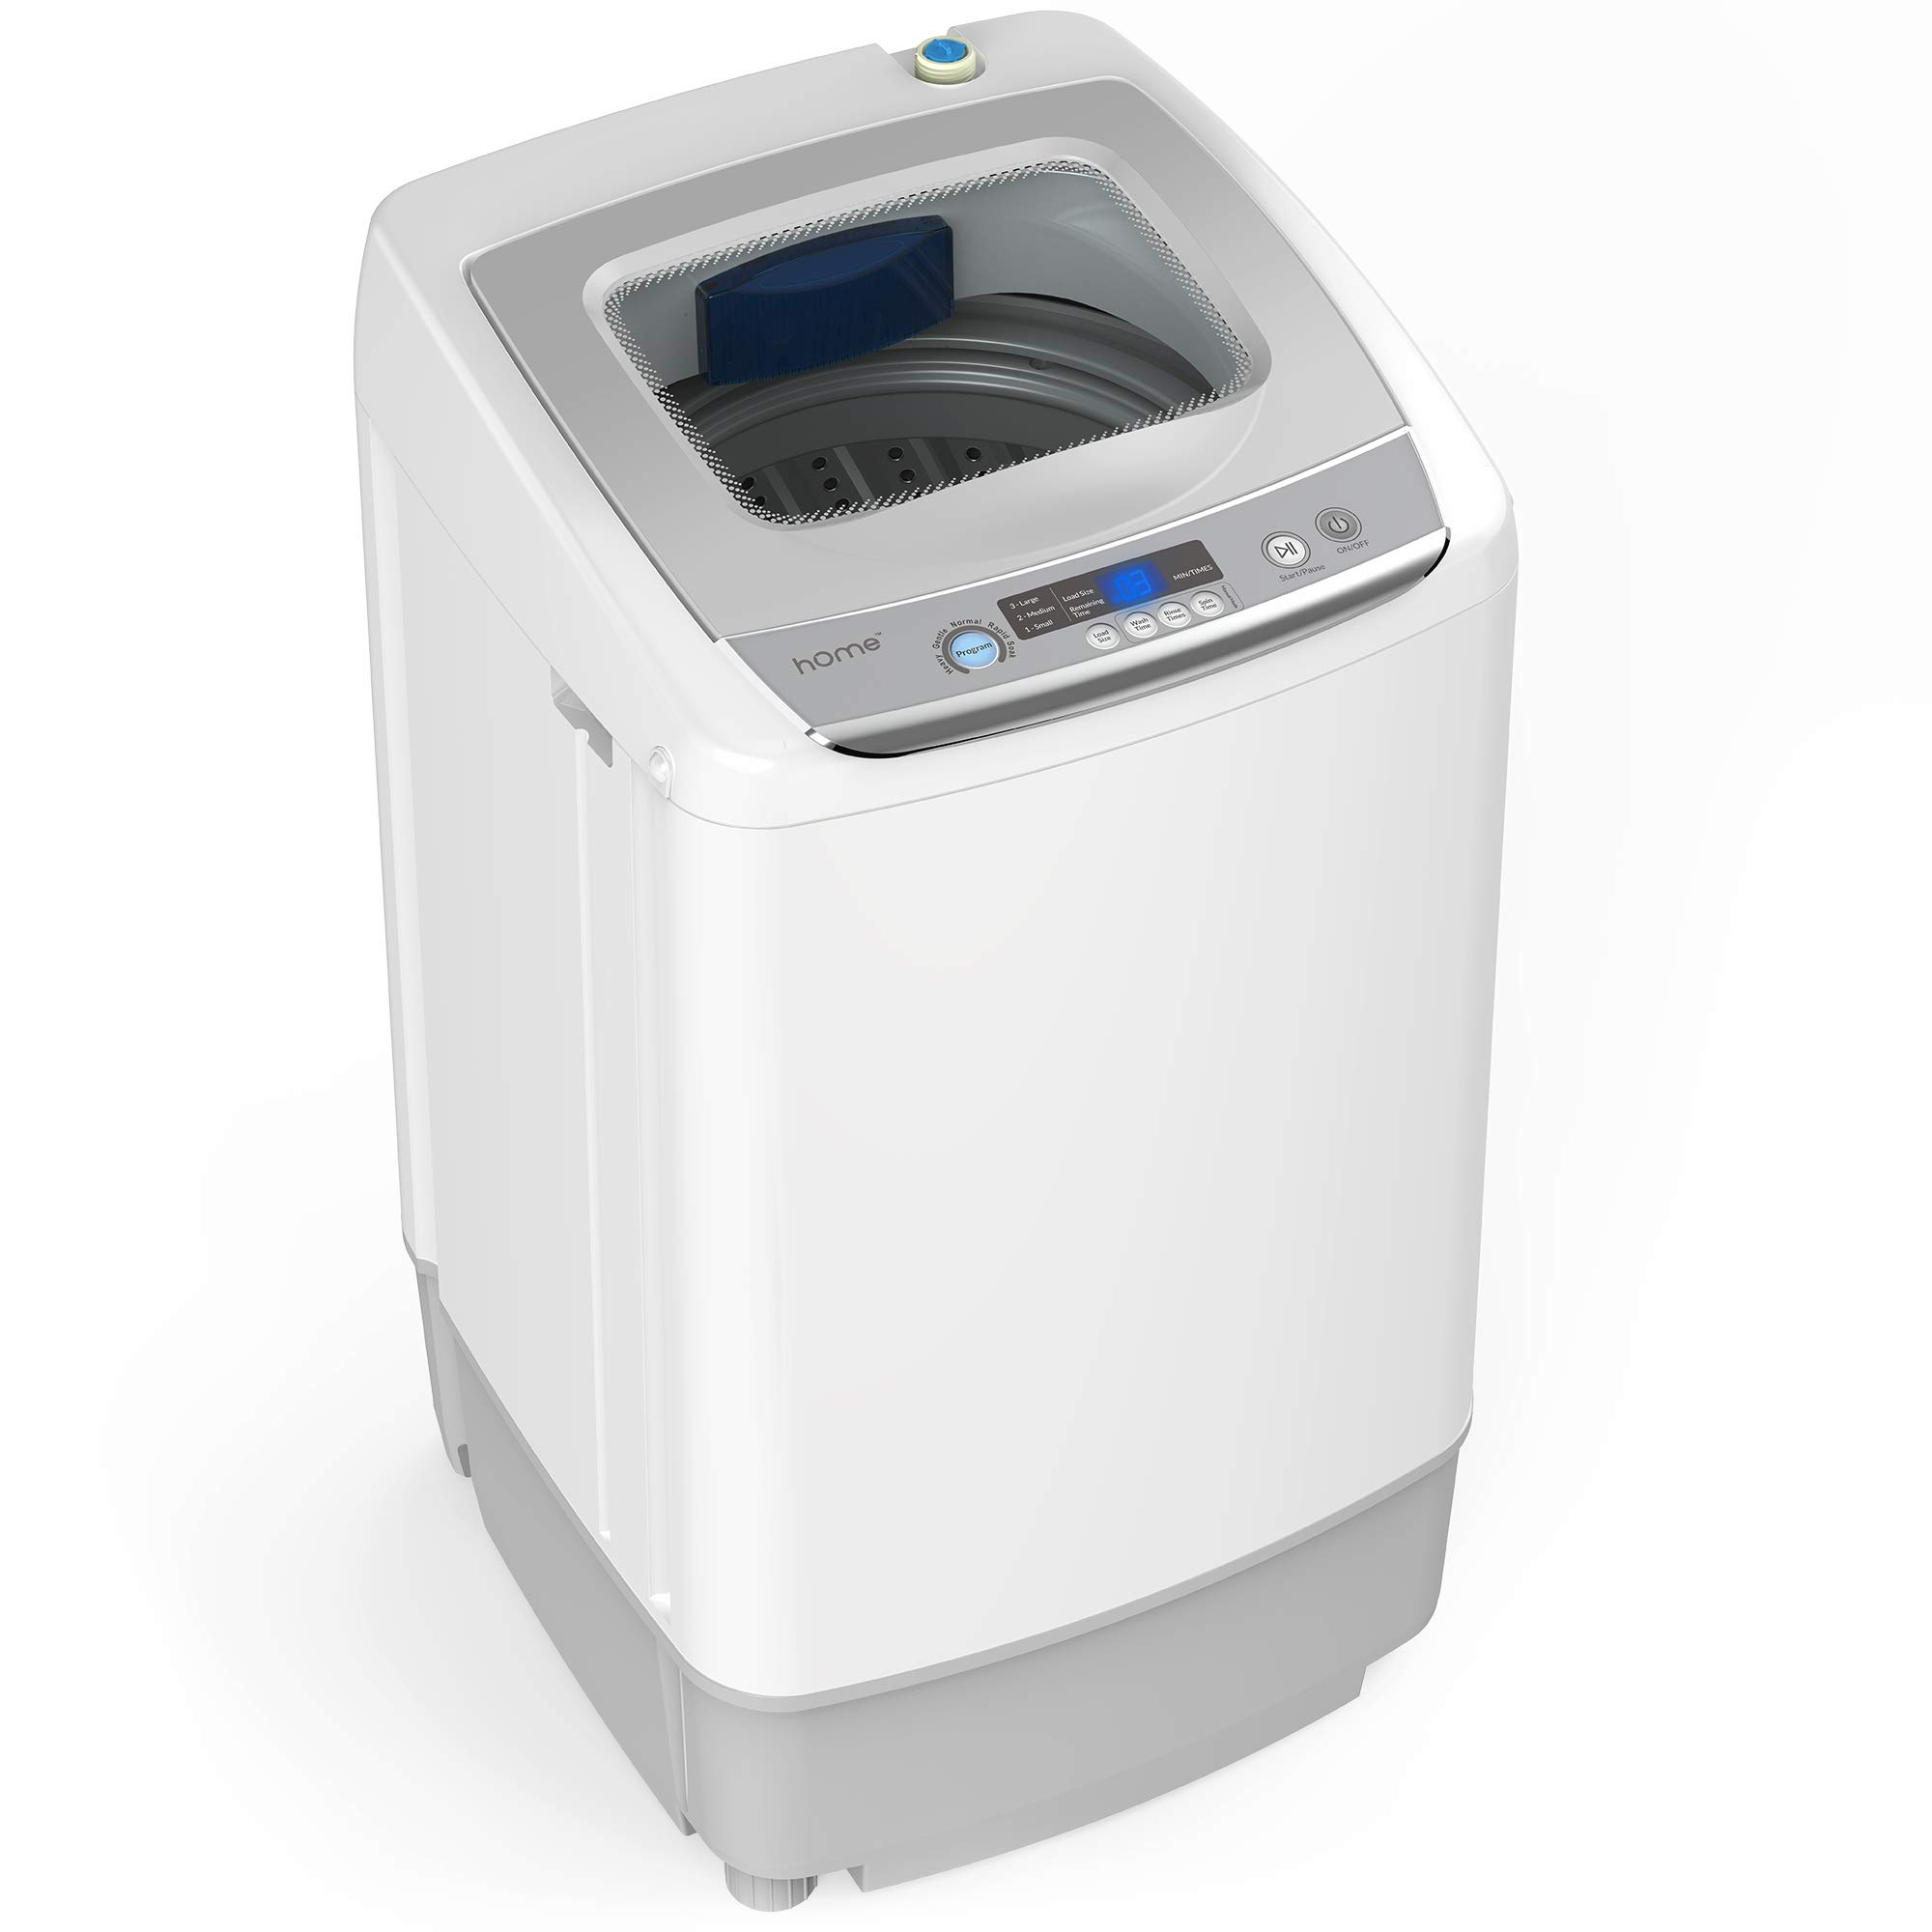 hOmeLabs 0.9 Cu. Ft. Portable Washing Machine - 6 Pound Capacity, Top Loading, 5 Wash Cycles, 3 Water Level Selections and LED Display - Perfect for Apartments, RVs and Small Space Living by hOmeLabs